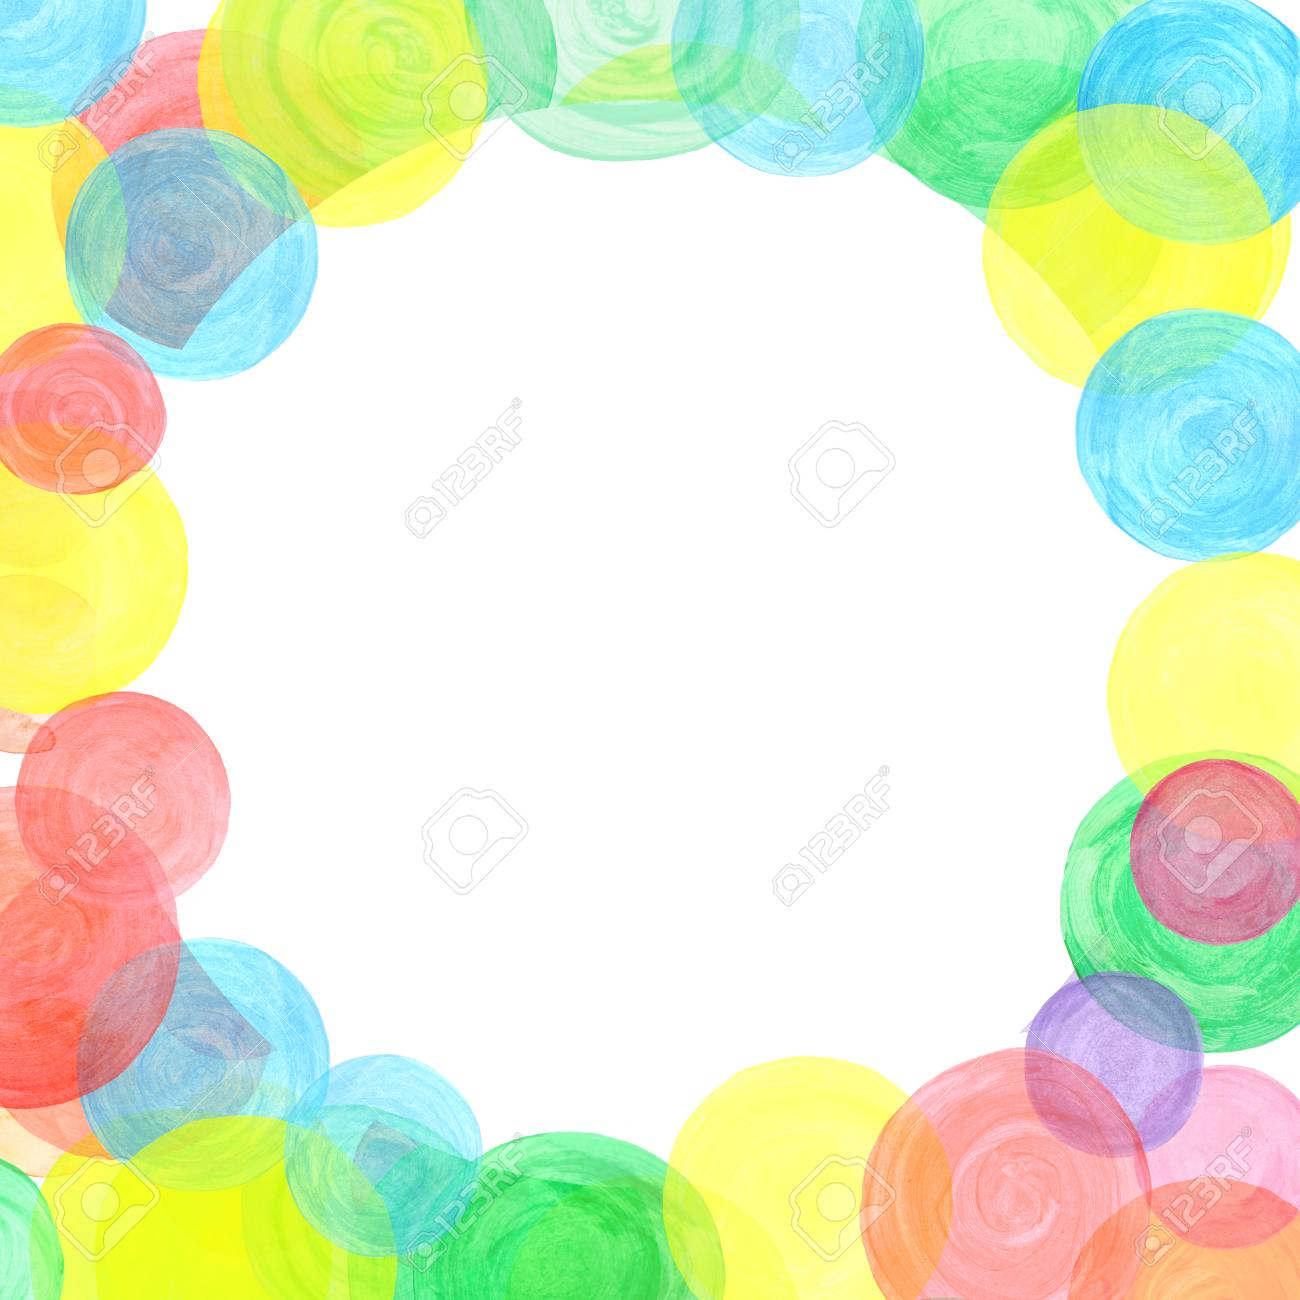 design template decorated with rainbow confetti colorful watercolor